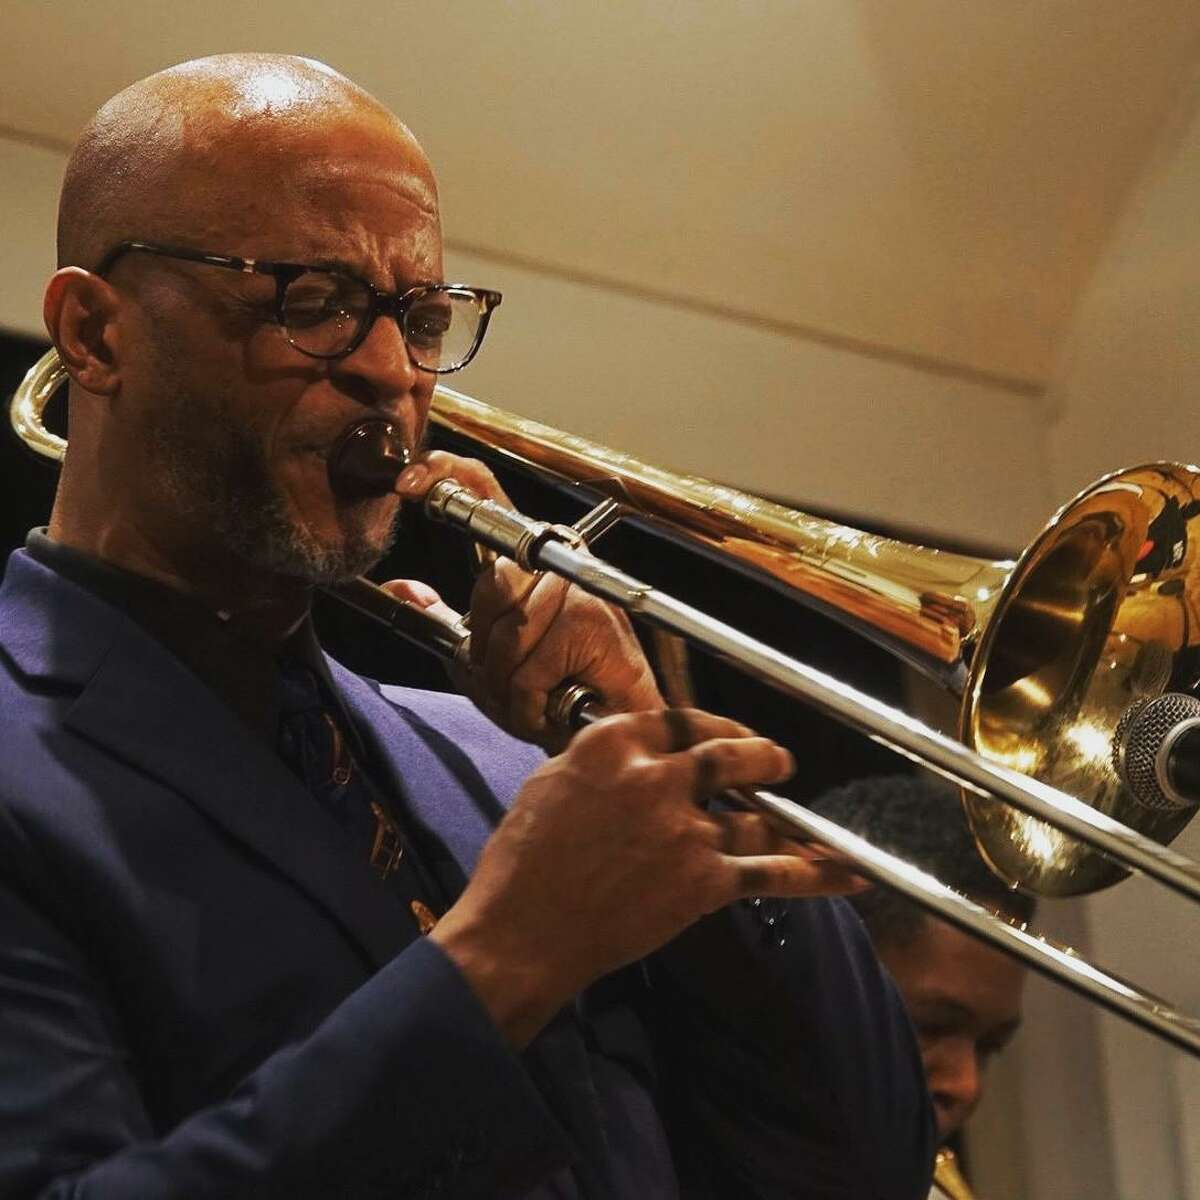 An accomplished trombonist who grew up in San Antonio, Ron Wilkins, was in an induced coma for 32 days after falling ill with COVID-19 in early April.